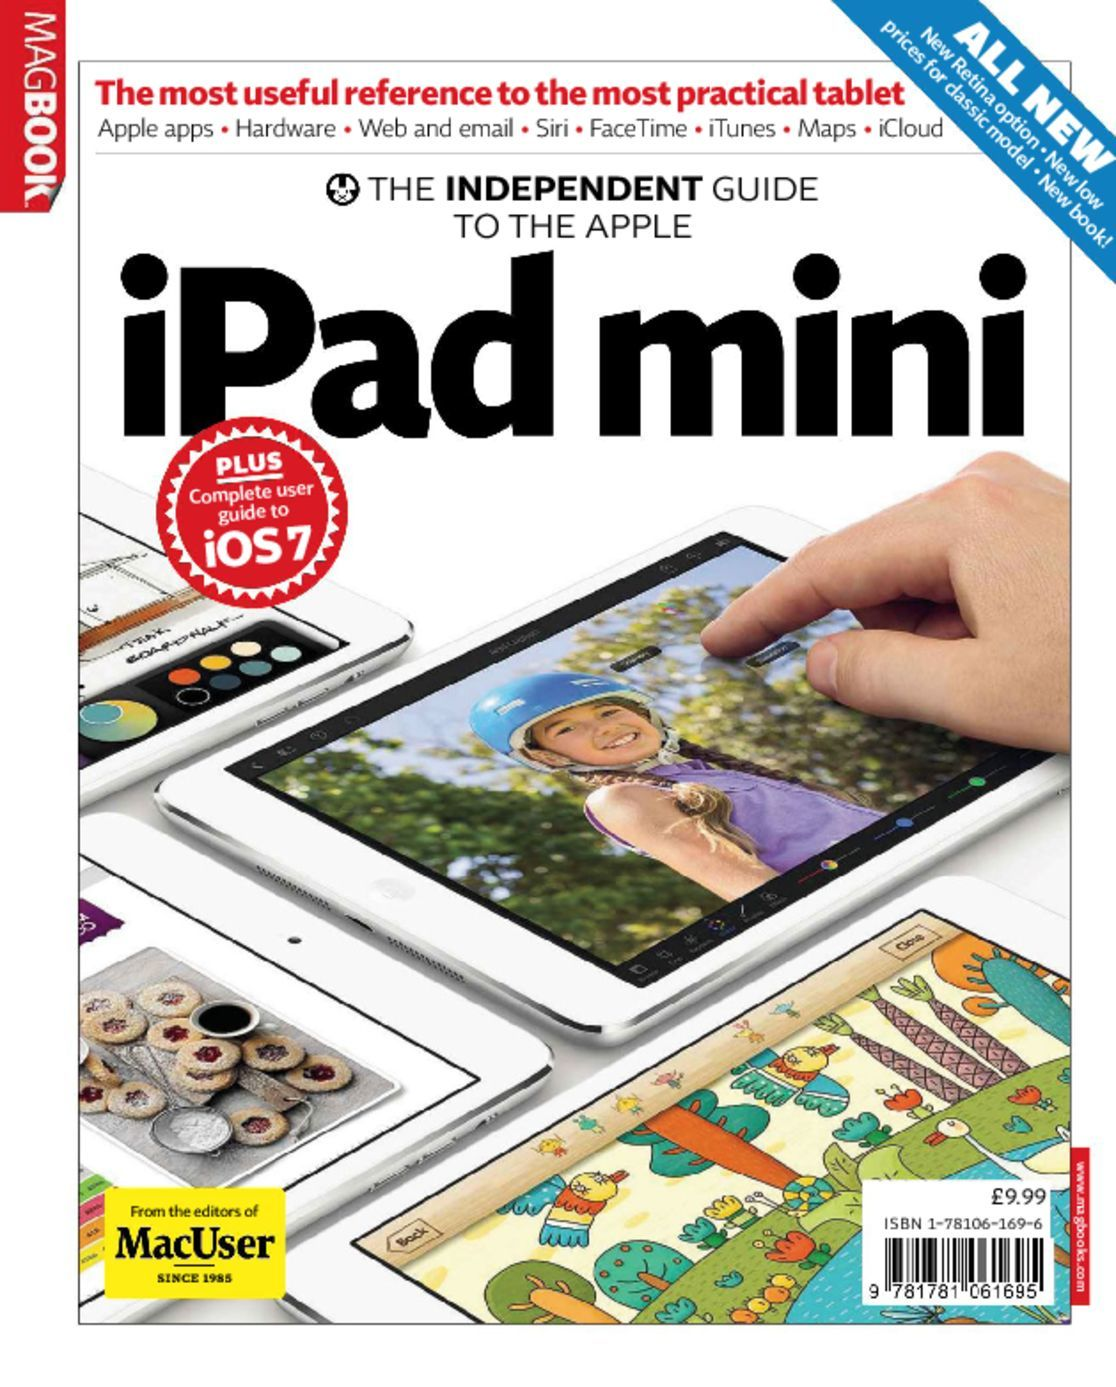 The Independent Guide to the Apple iPad Mini (Digital)